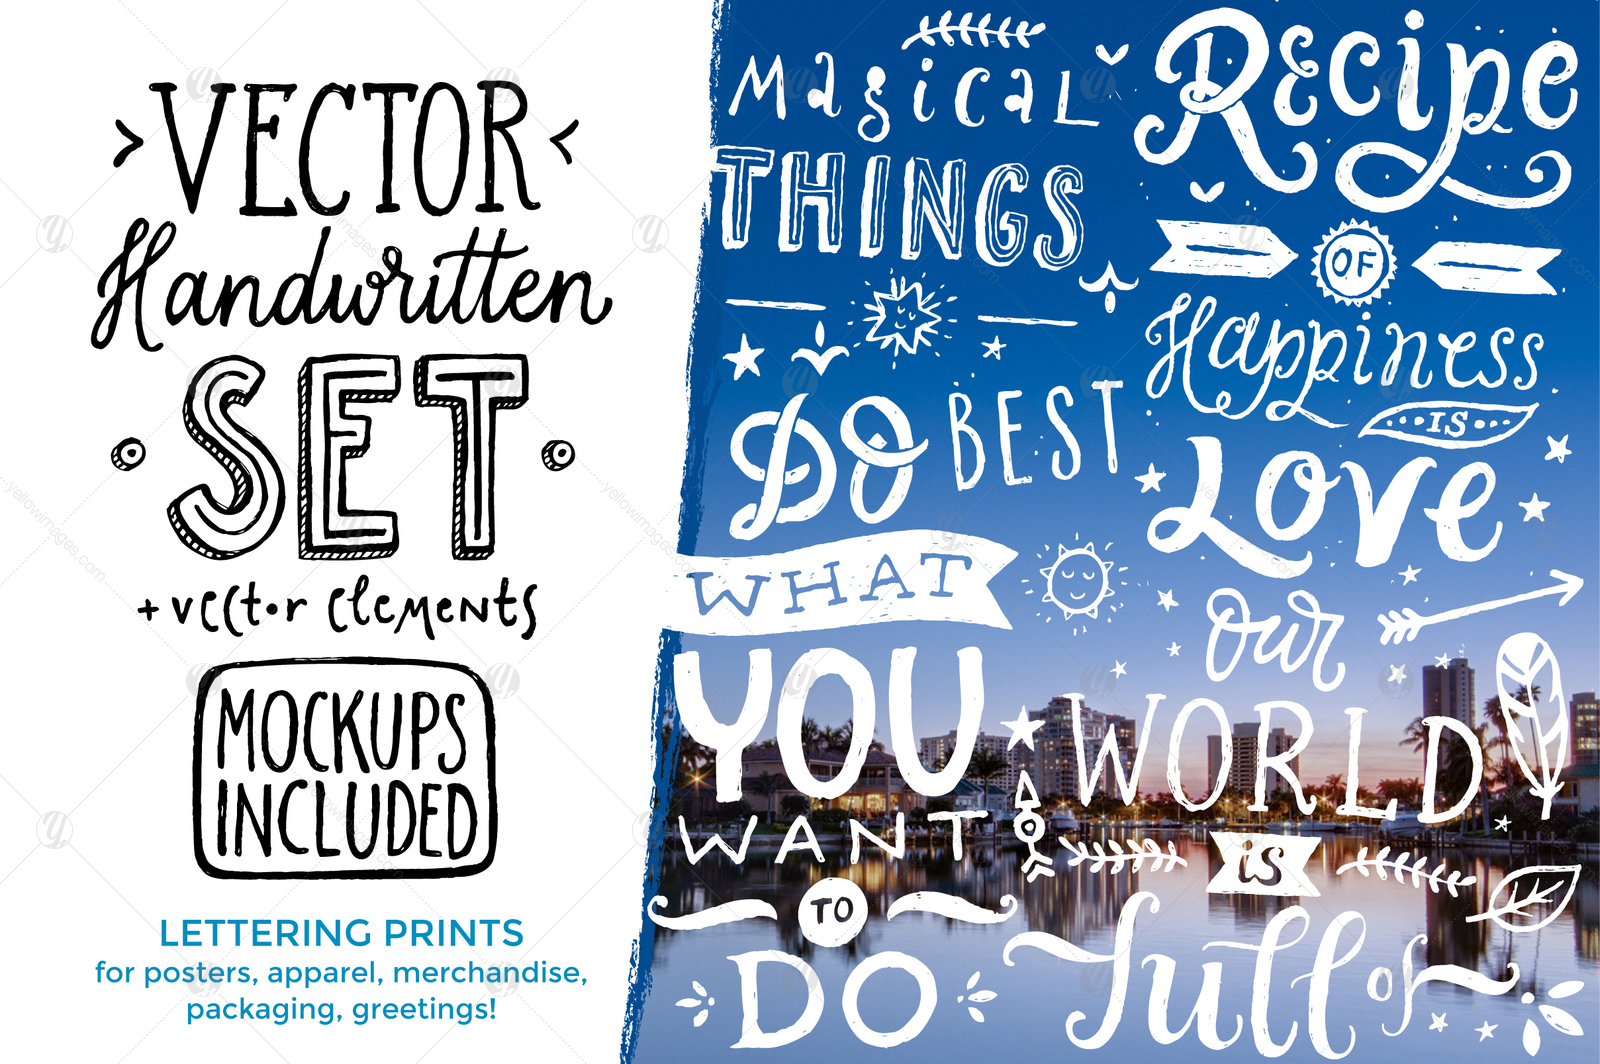 Vector Handwritten Set